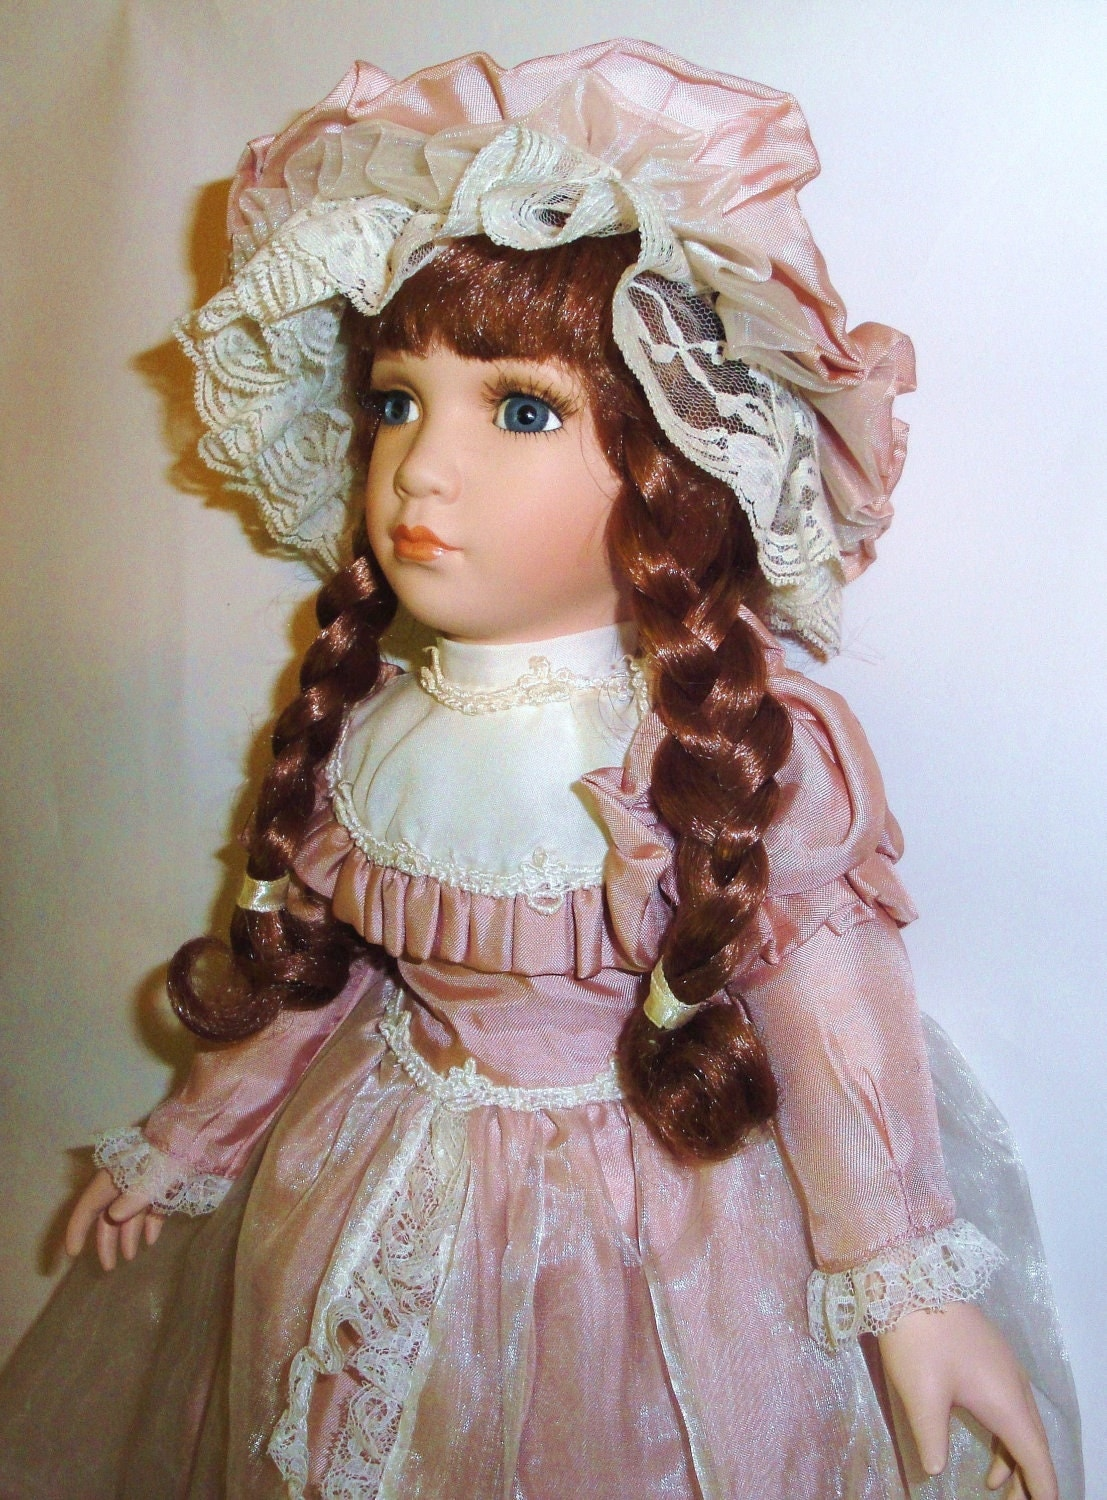 Vintage Porcelain Doll 18 William Tung Tuss Inc